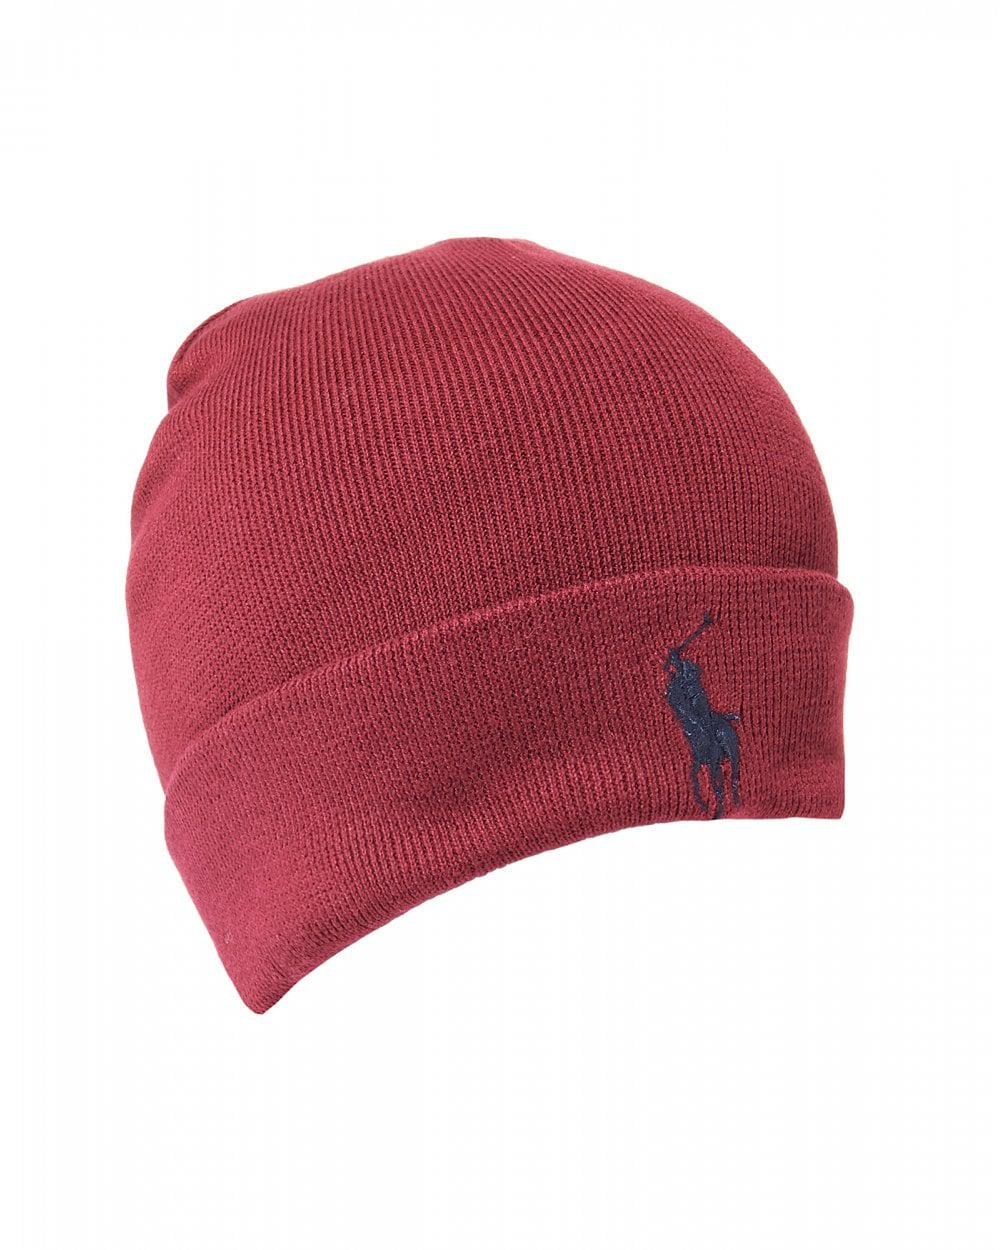 Lyst - Ralph Lauren Large Logo Classic Wine Red Beanie Hat in Red for Men 61d4bf62194a